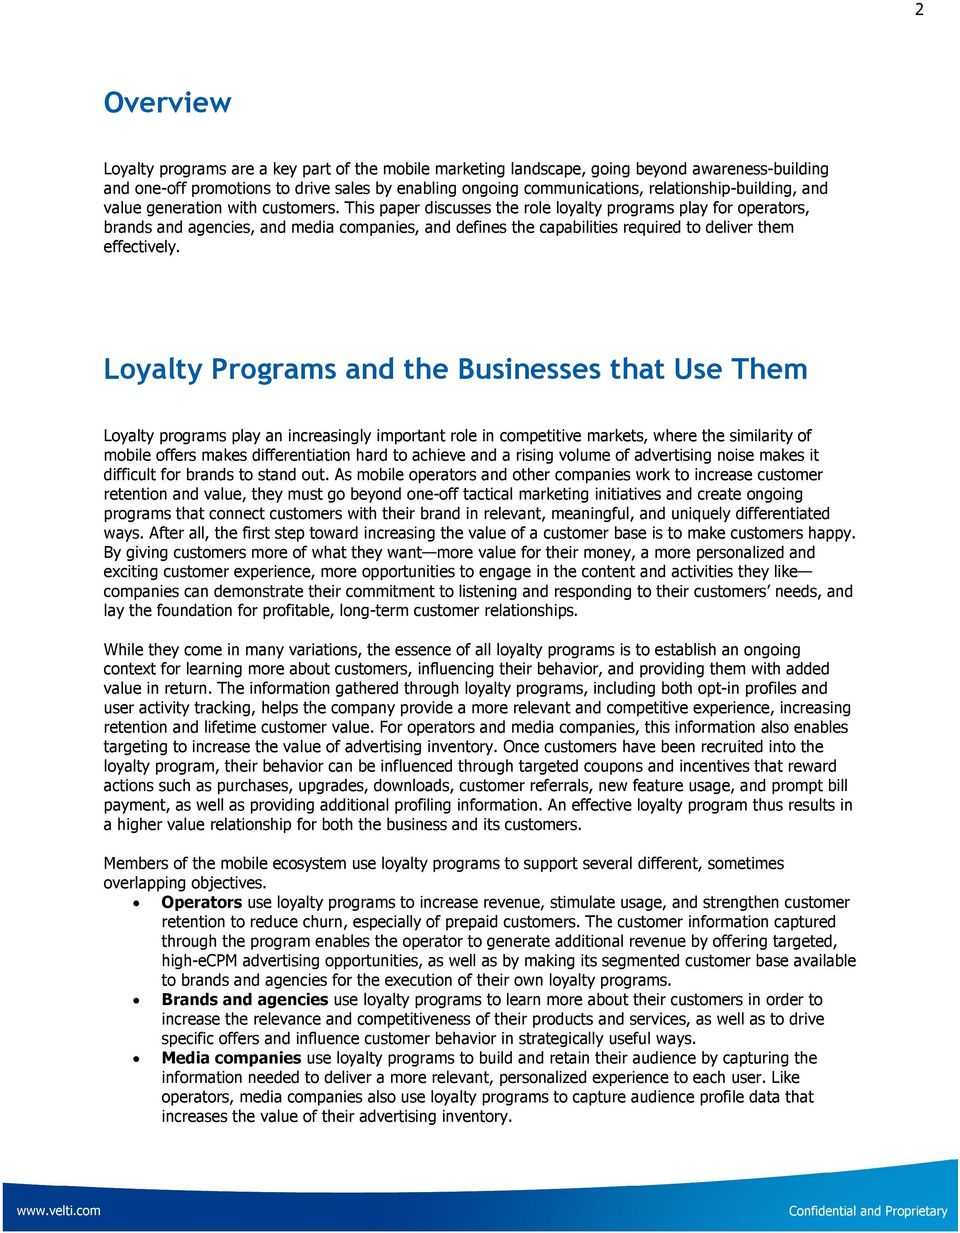 This paper discusses the role loyalty programs play for operators, brands and agencies, and media companies, and defines the capabilities required to deliver them effectively.